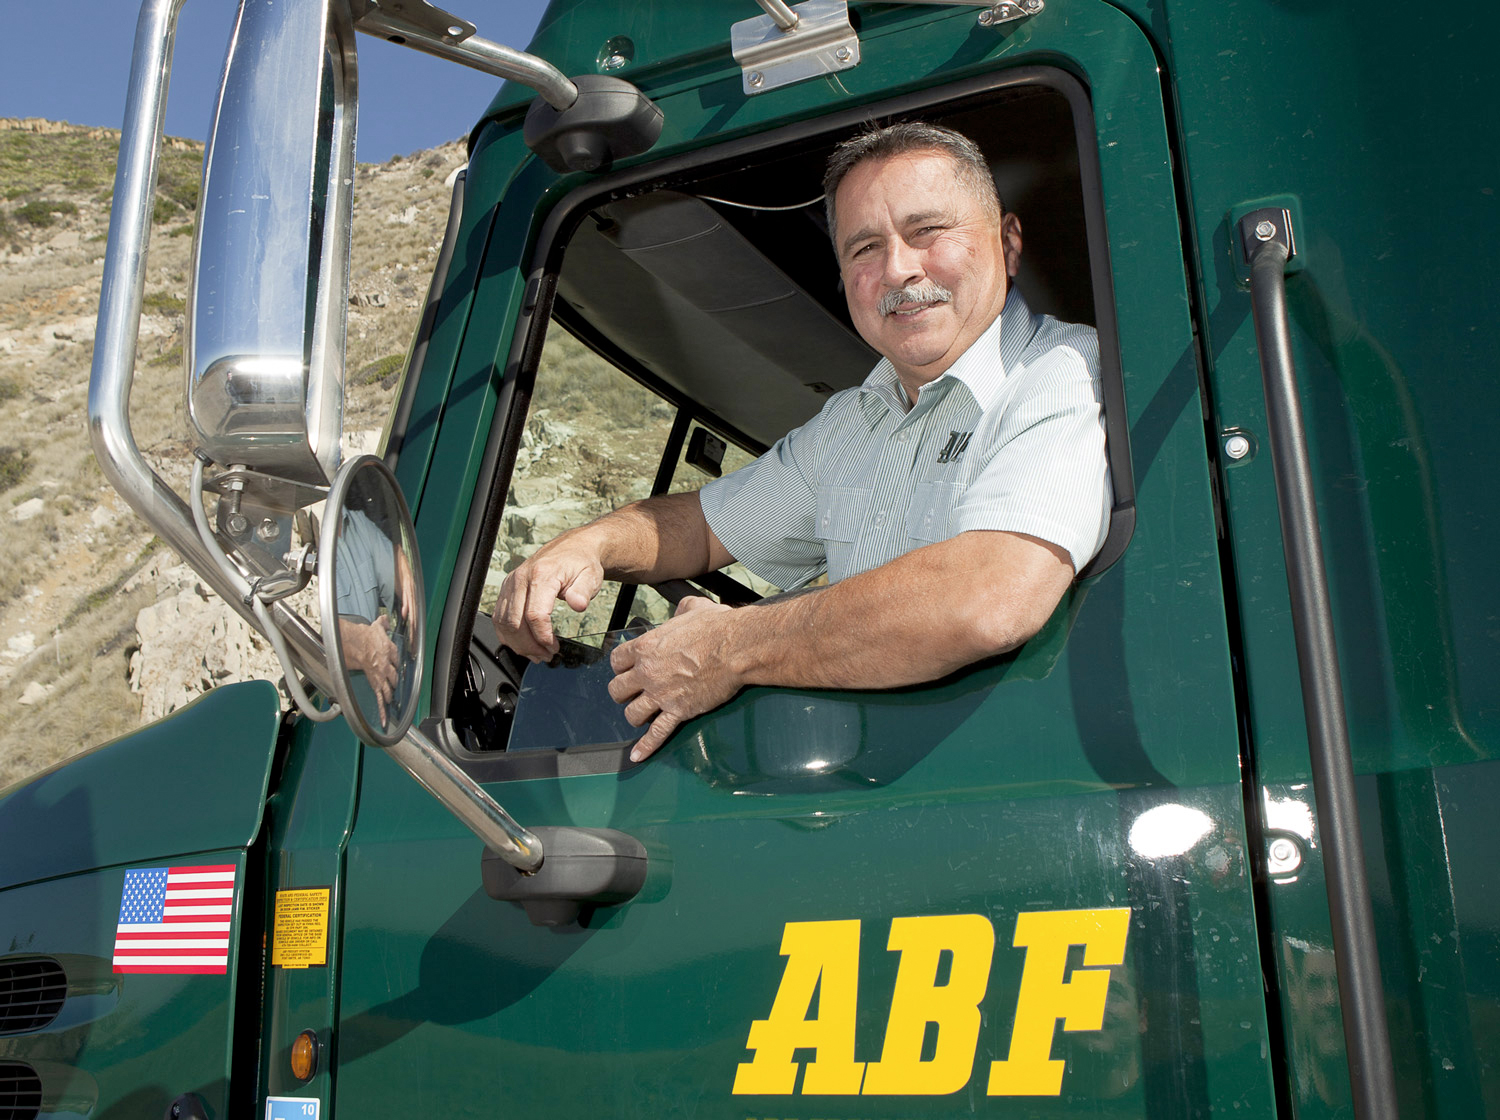 ABF and Teamsters Extend Contract, ABF Still Challenging YRC-Teamsters Concessions